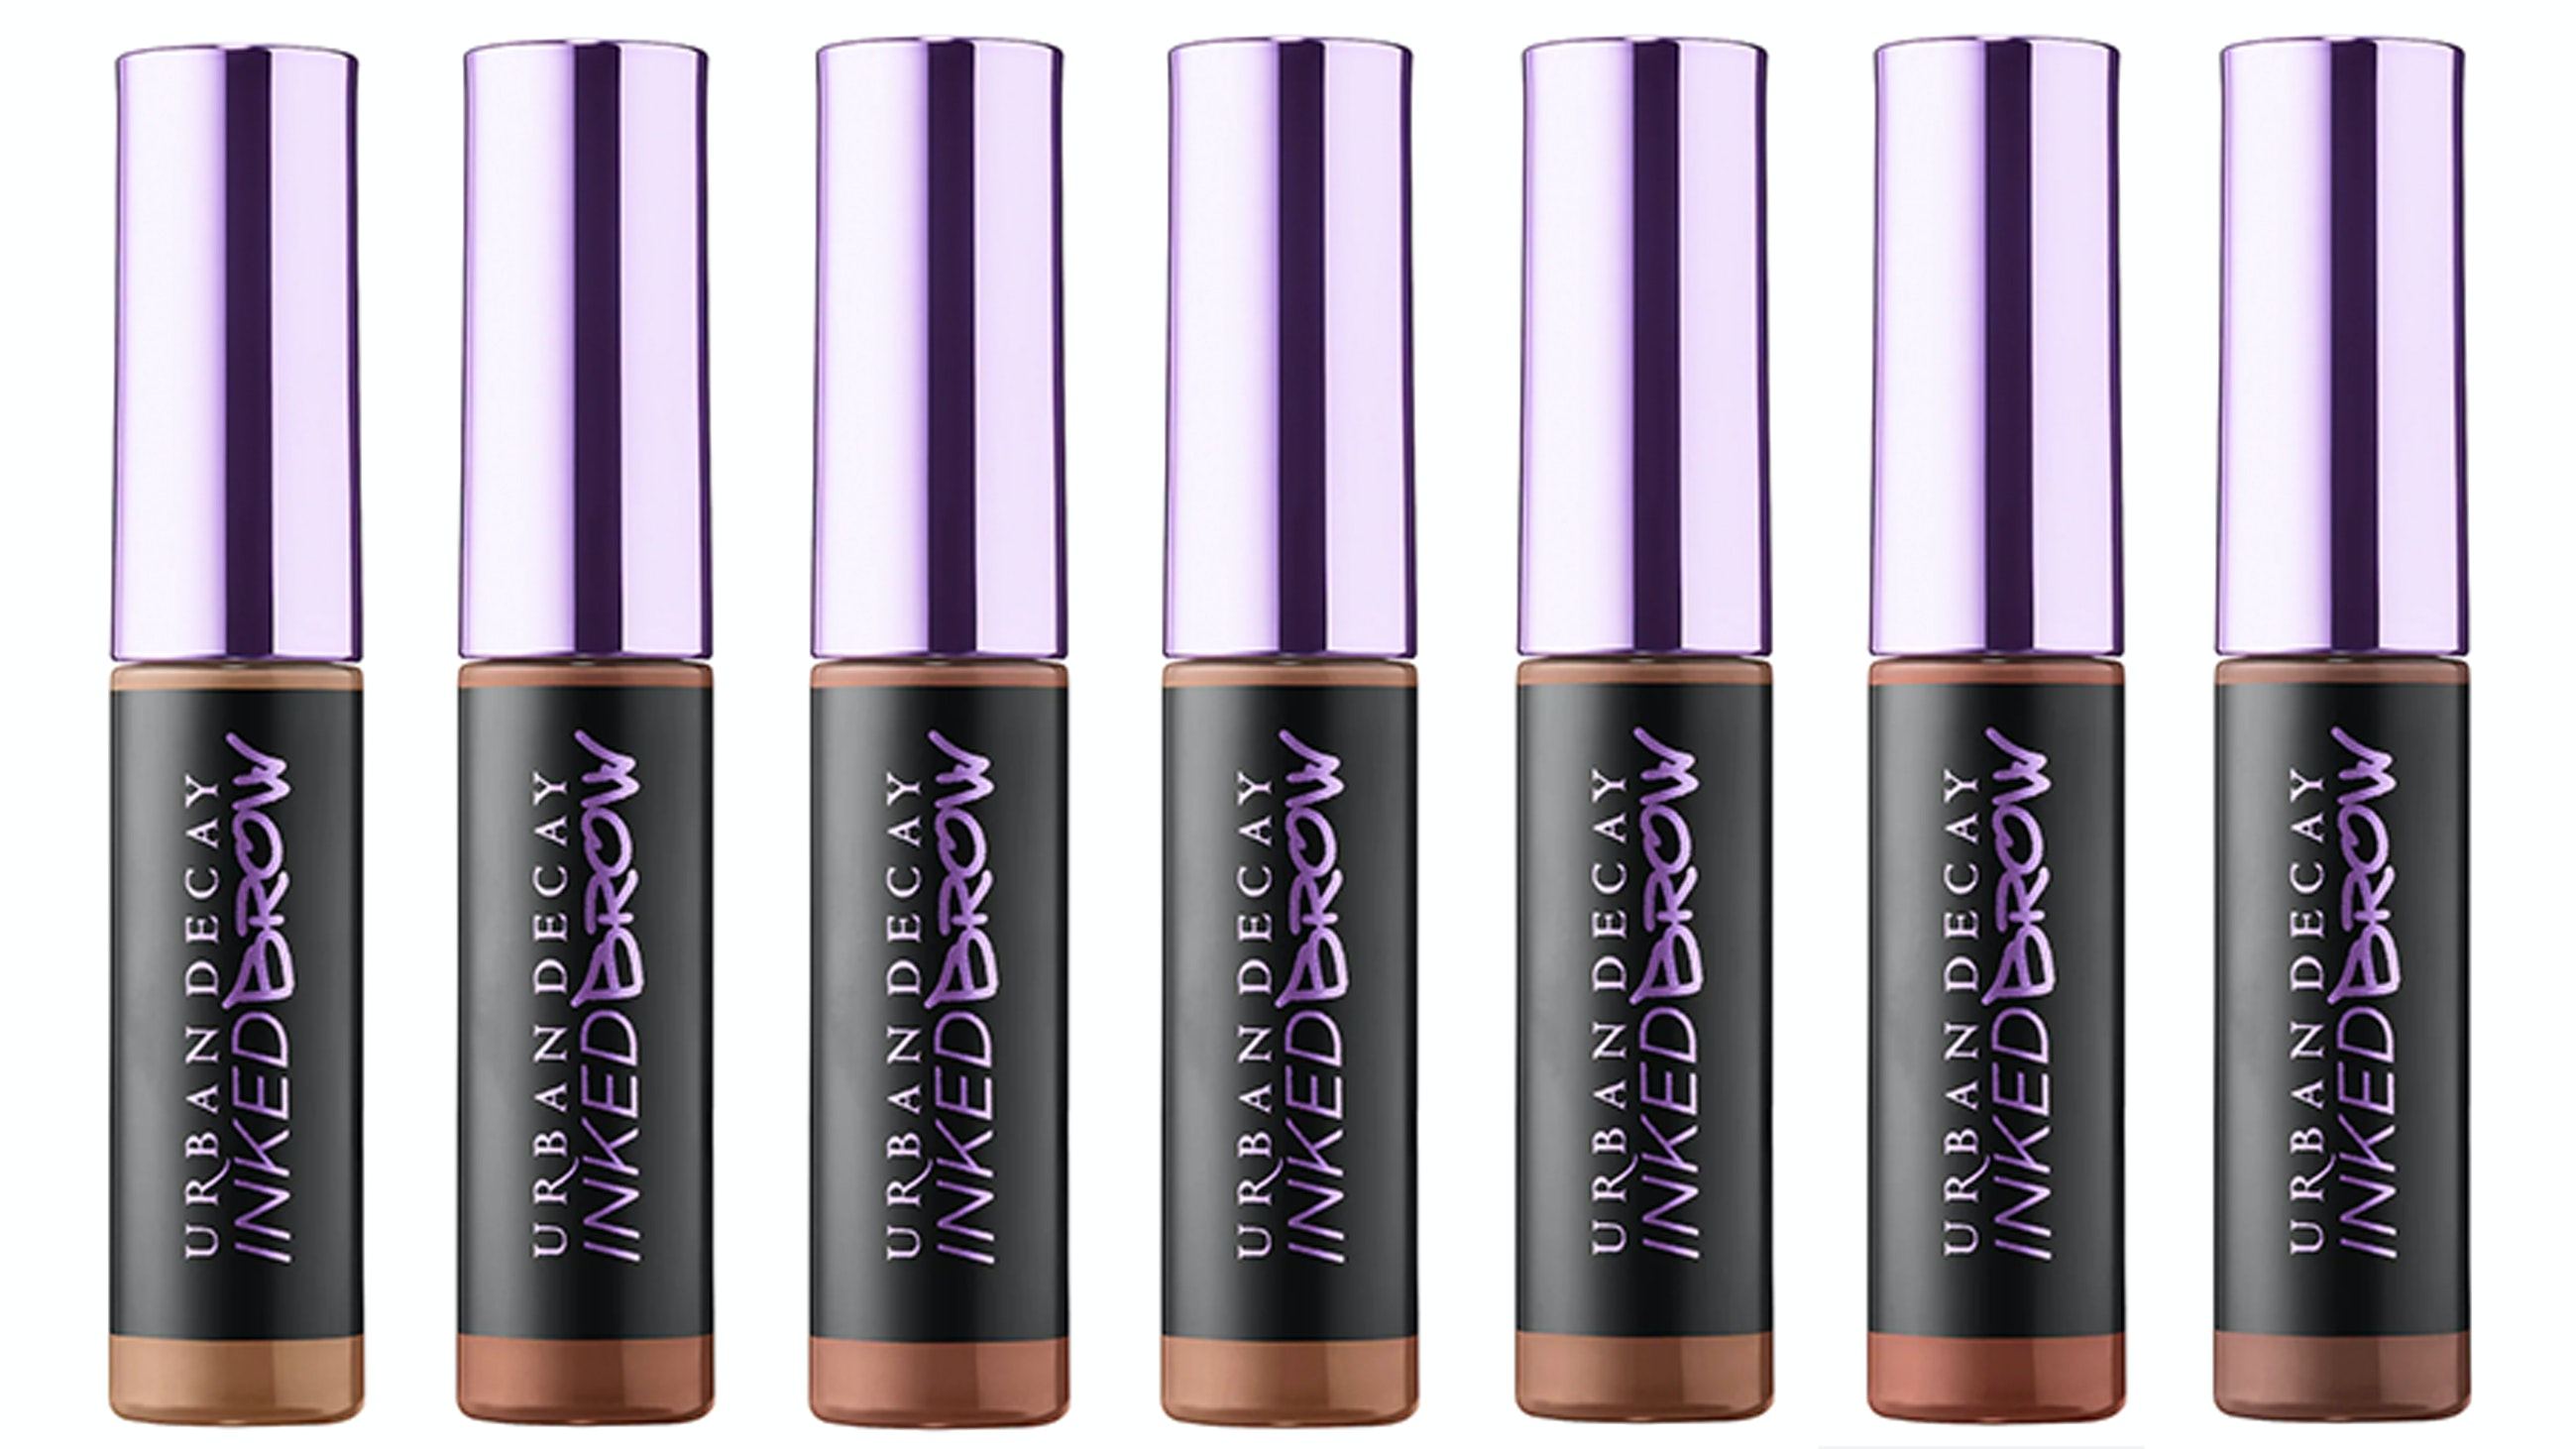 Urban Decay Inked Brow Gel review